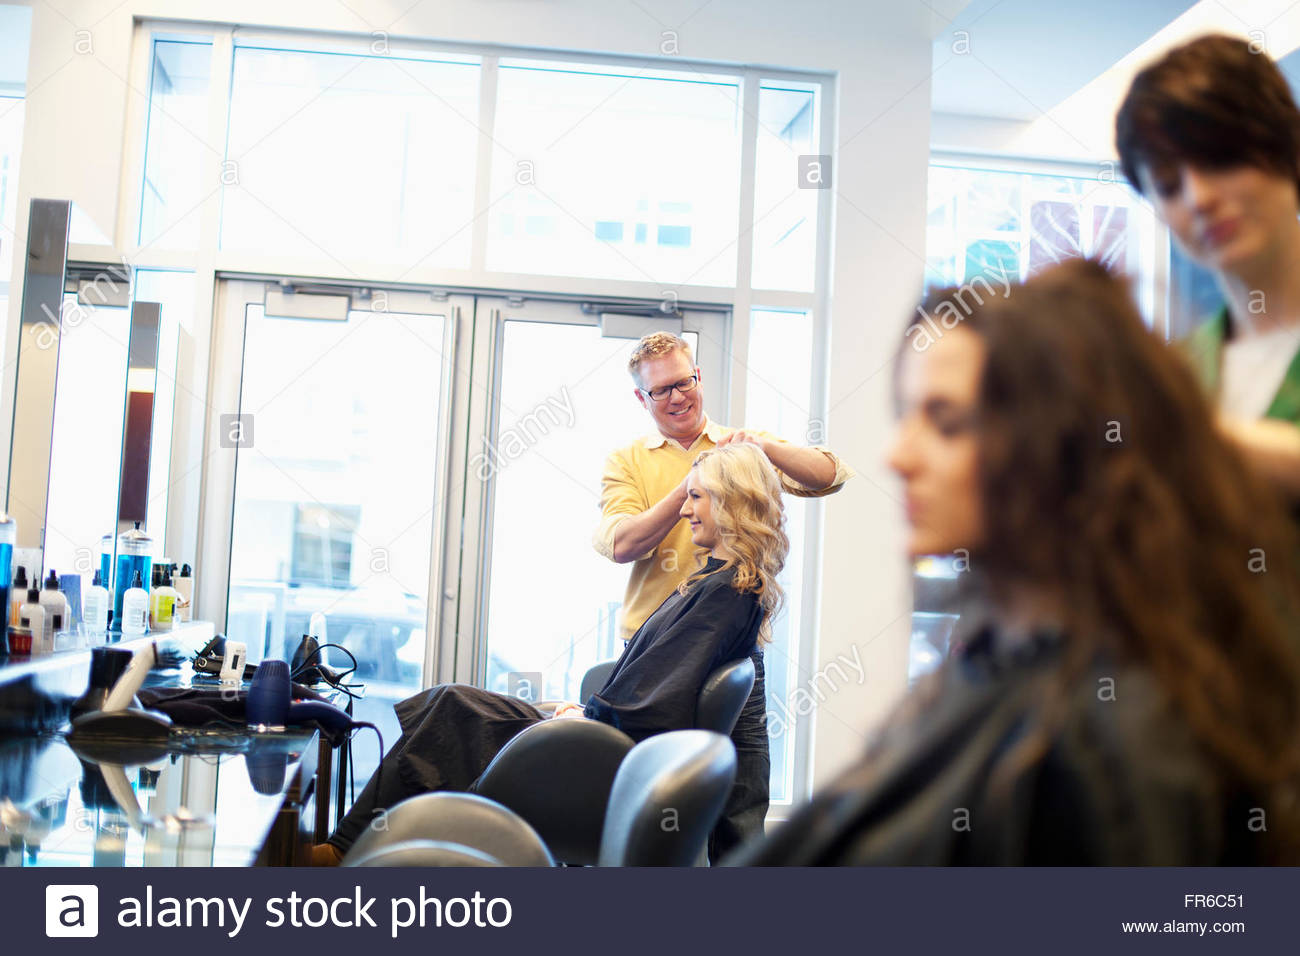 hairstylists working in salon Stock Photo